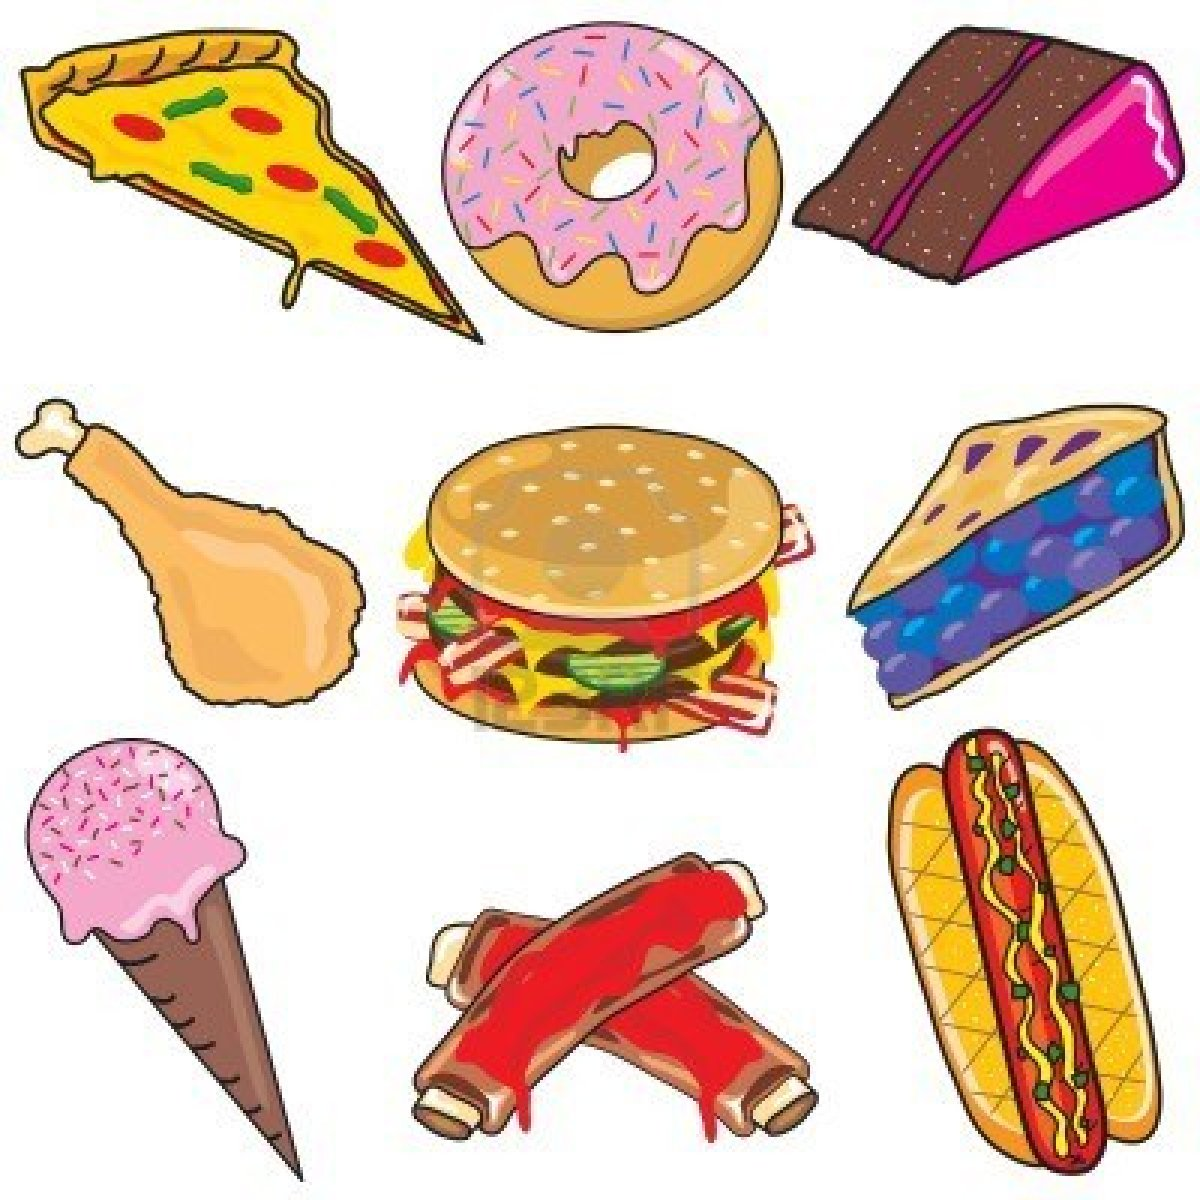 Processed food clipart #7